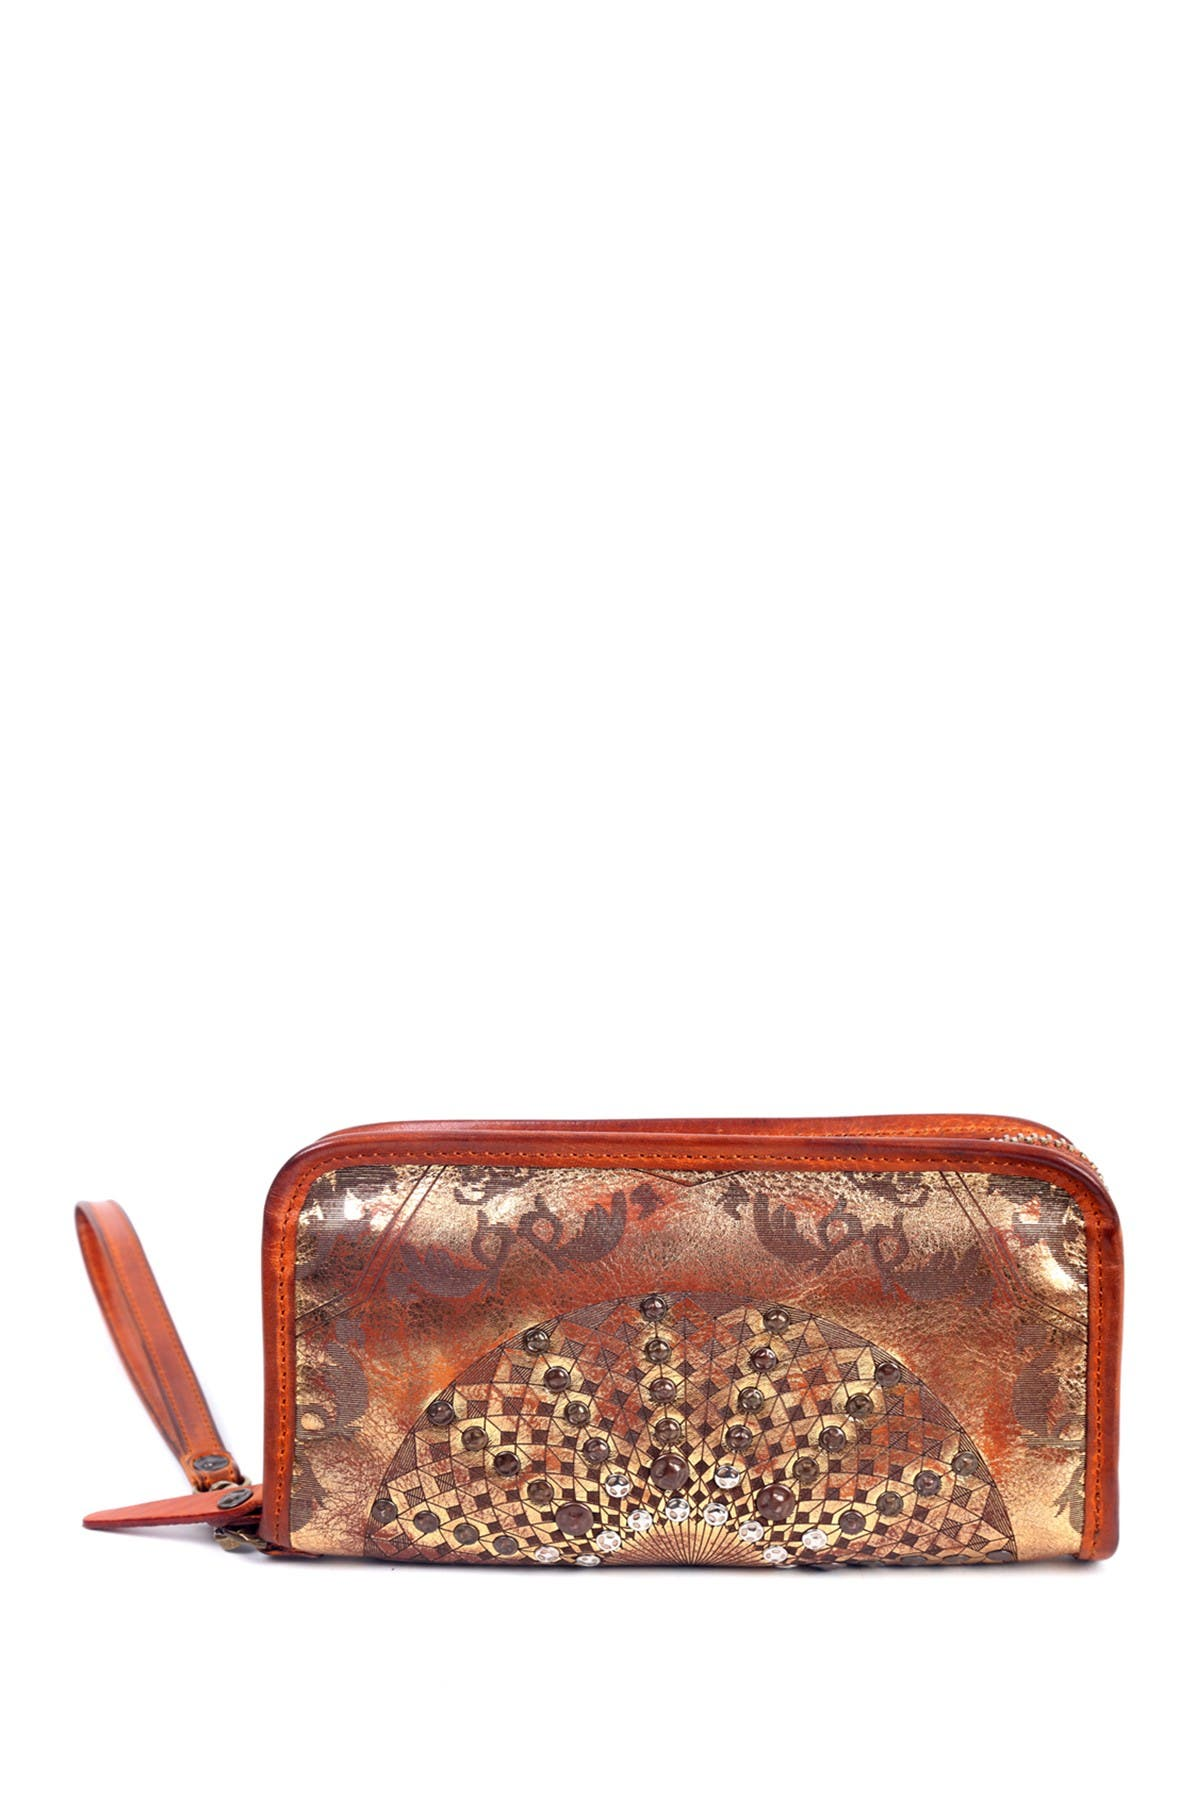 Image of Old Trend Mola Leather Clutch